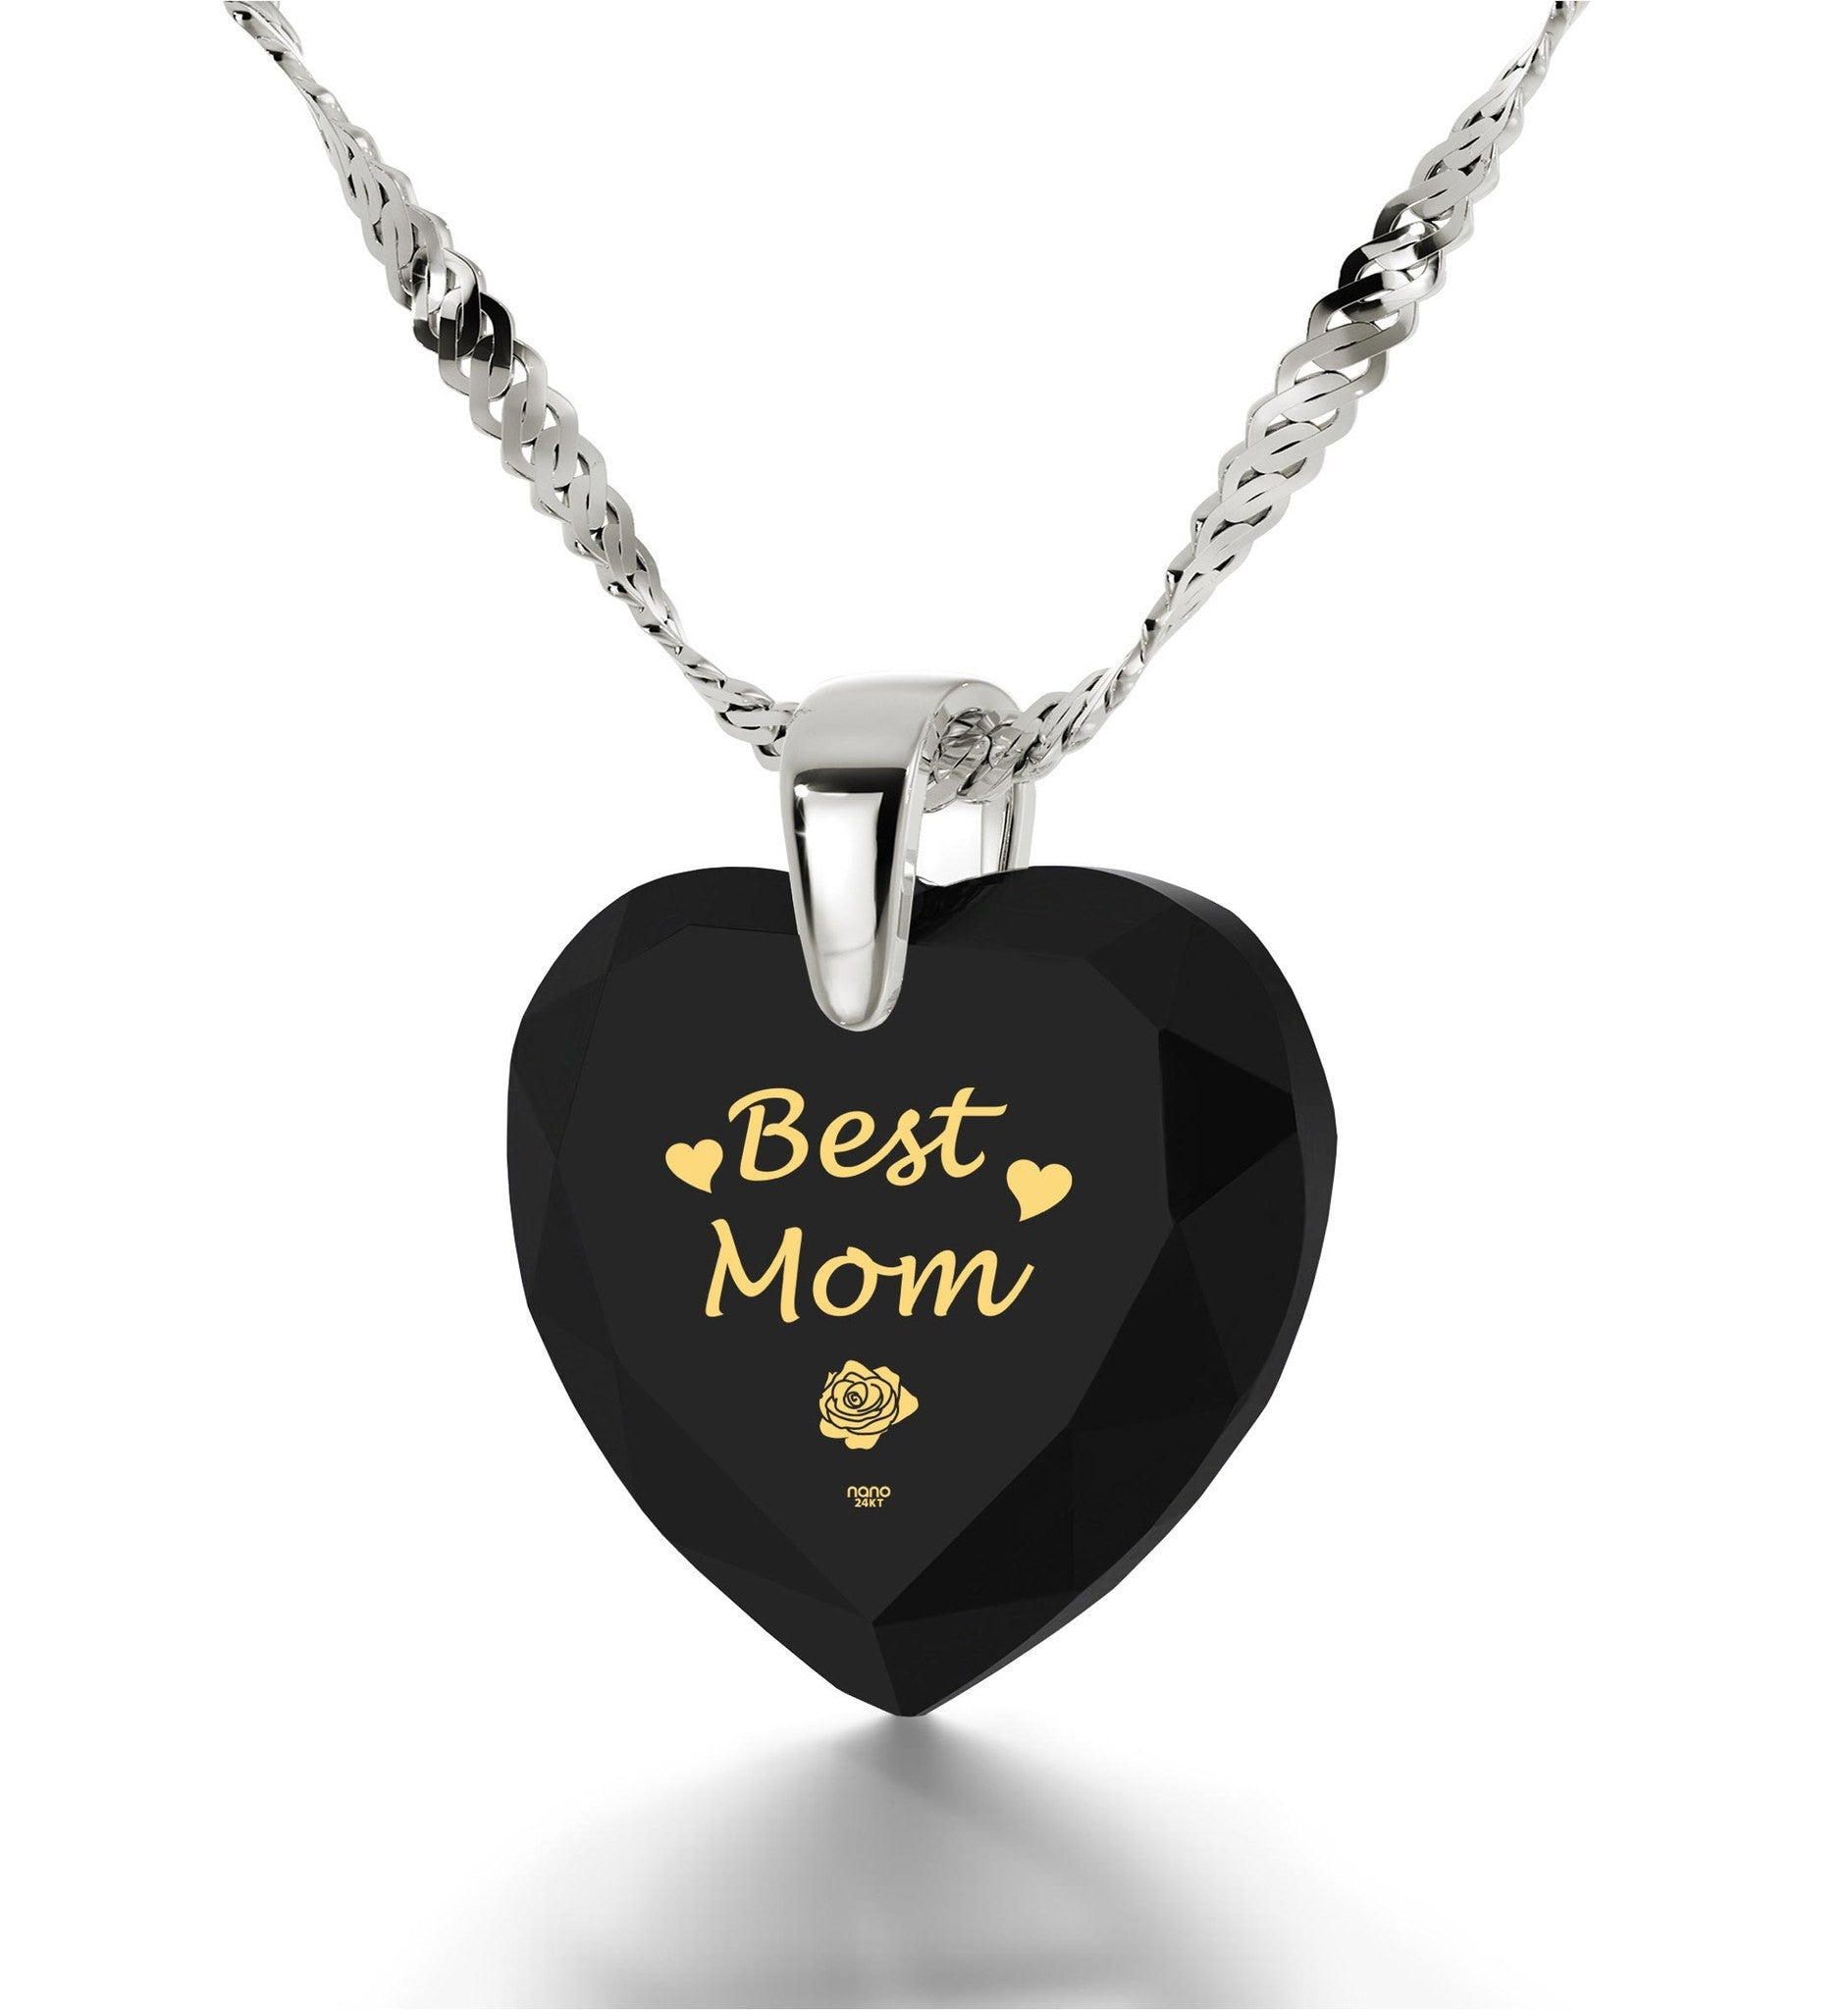 Top Gifts for Mom, 14k White Gold Meaningful Necklaces, Mother Daughter Jewelry, by Nano